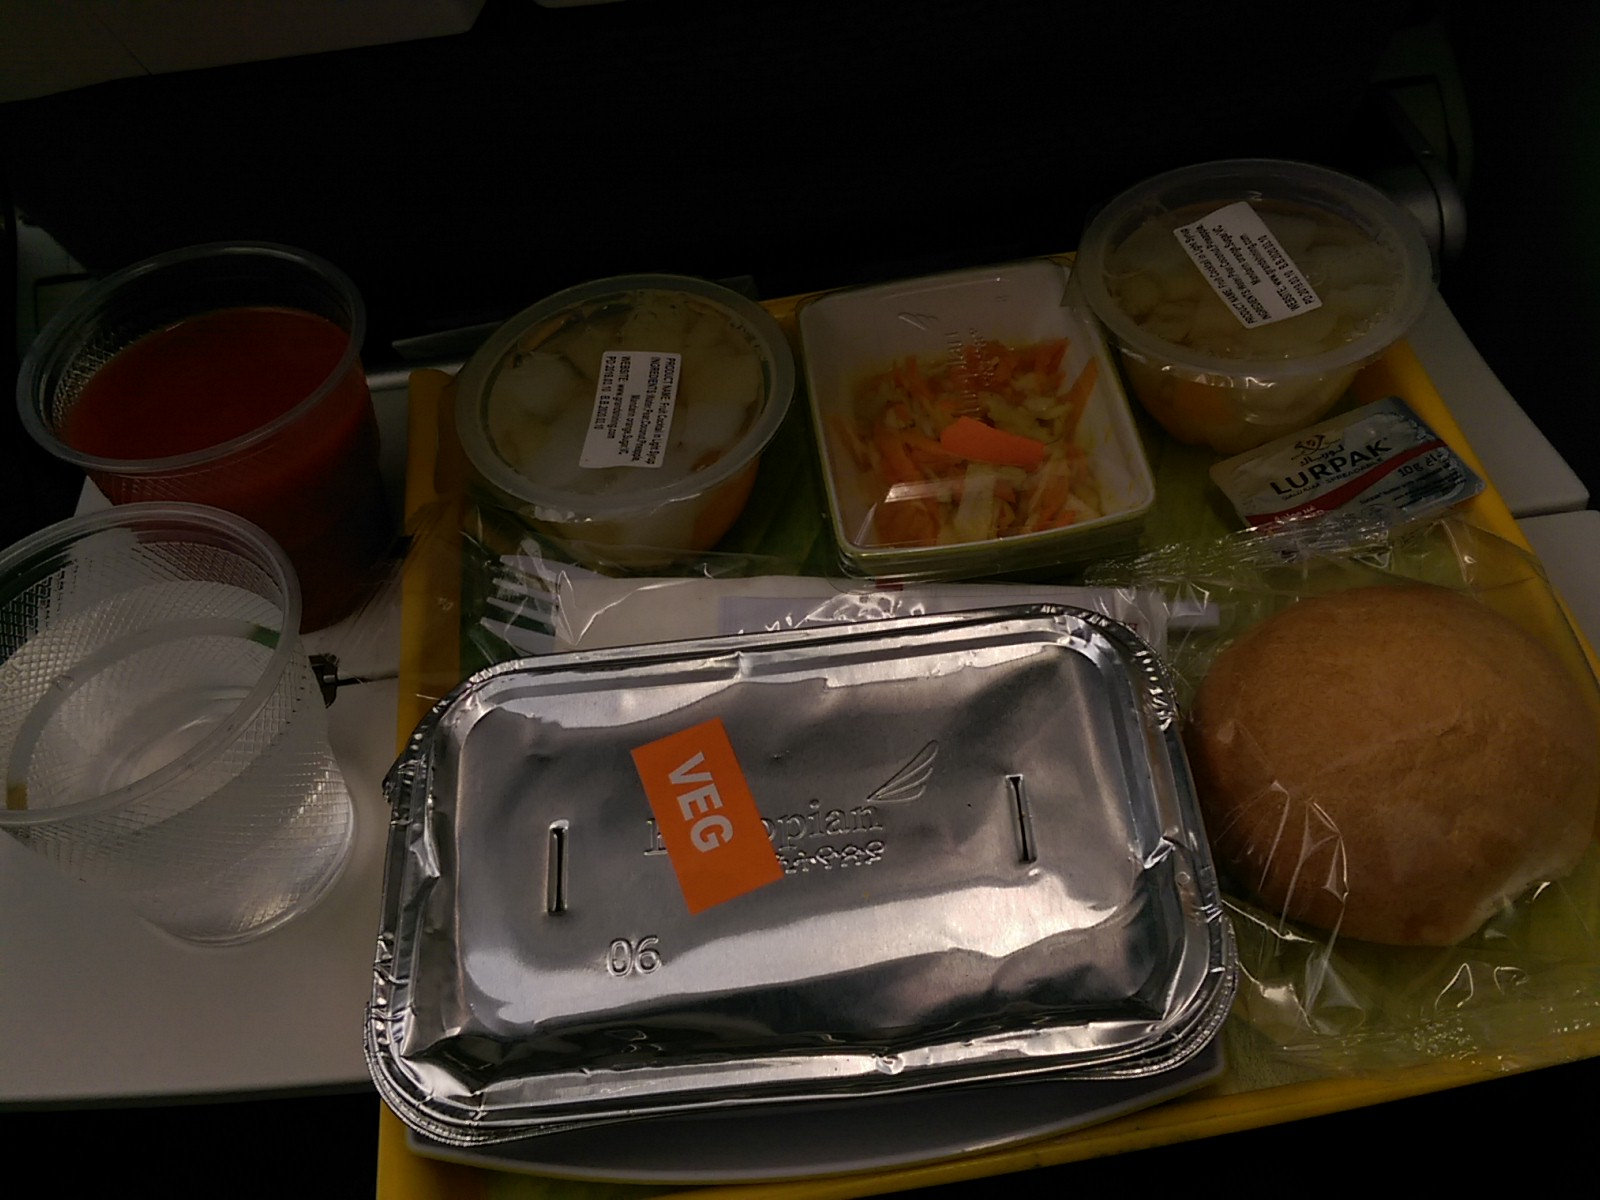 A seatback tray with plastic cups and foil covered boxes, fruit cups and a loaf of bread